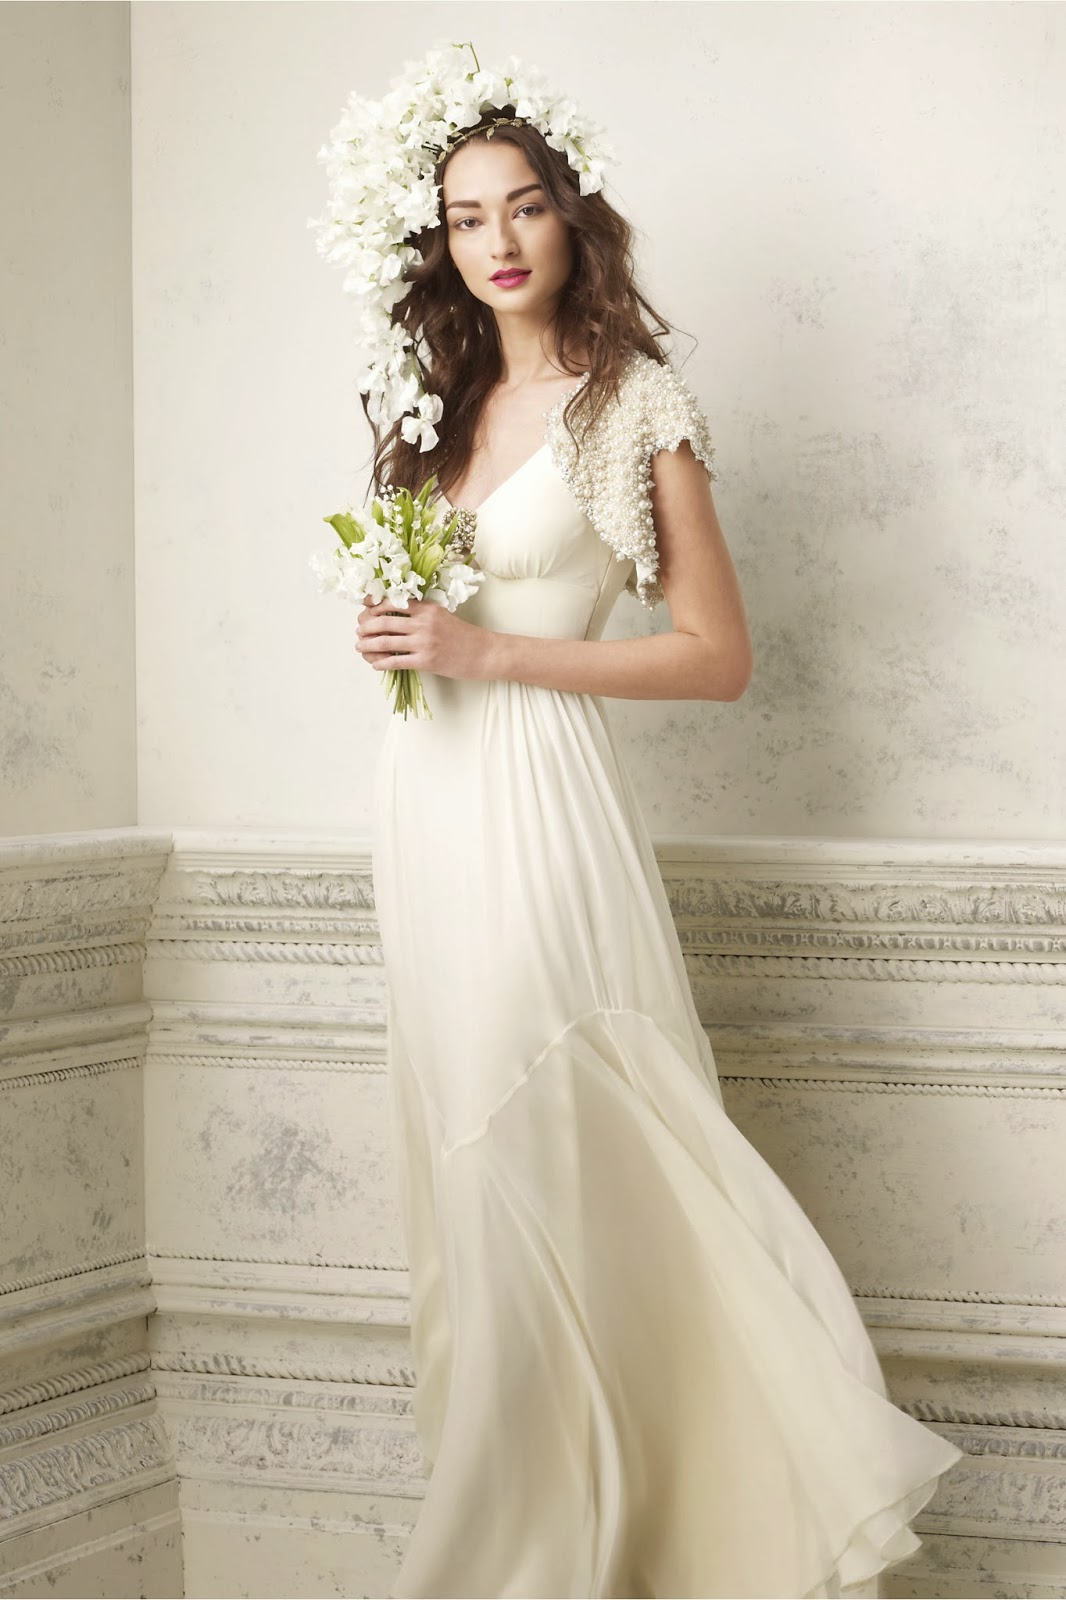 Wedding dress find elegant simple wedding dress for A pretty wedding dress